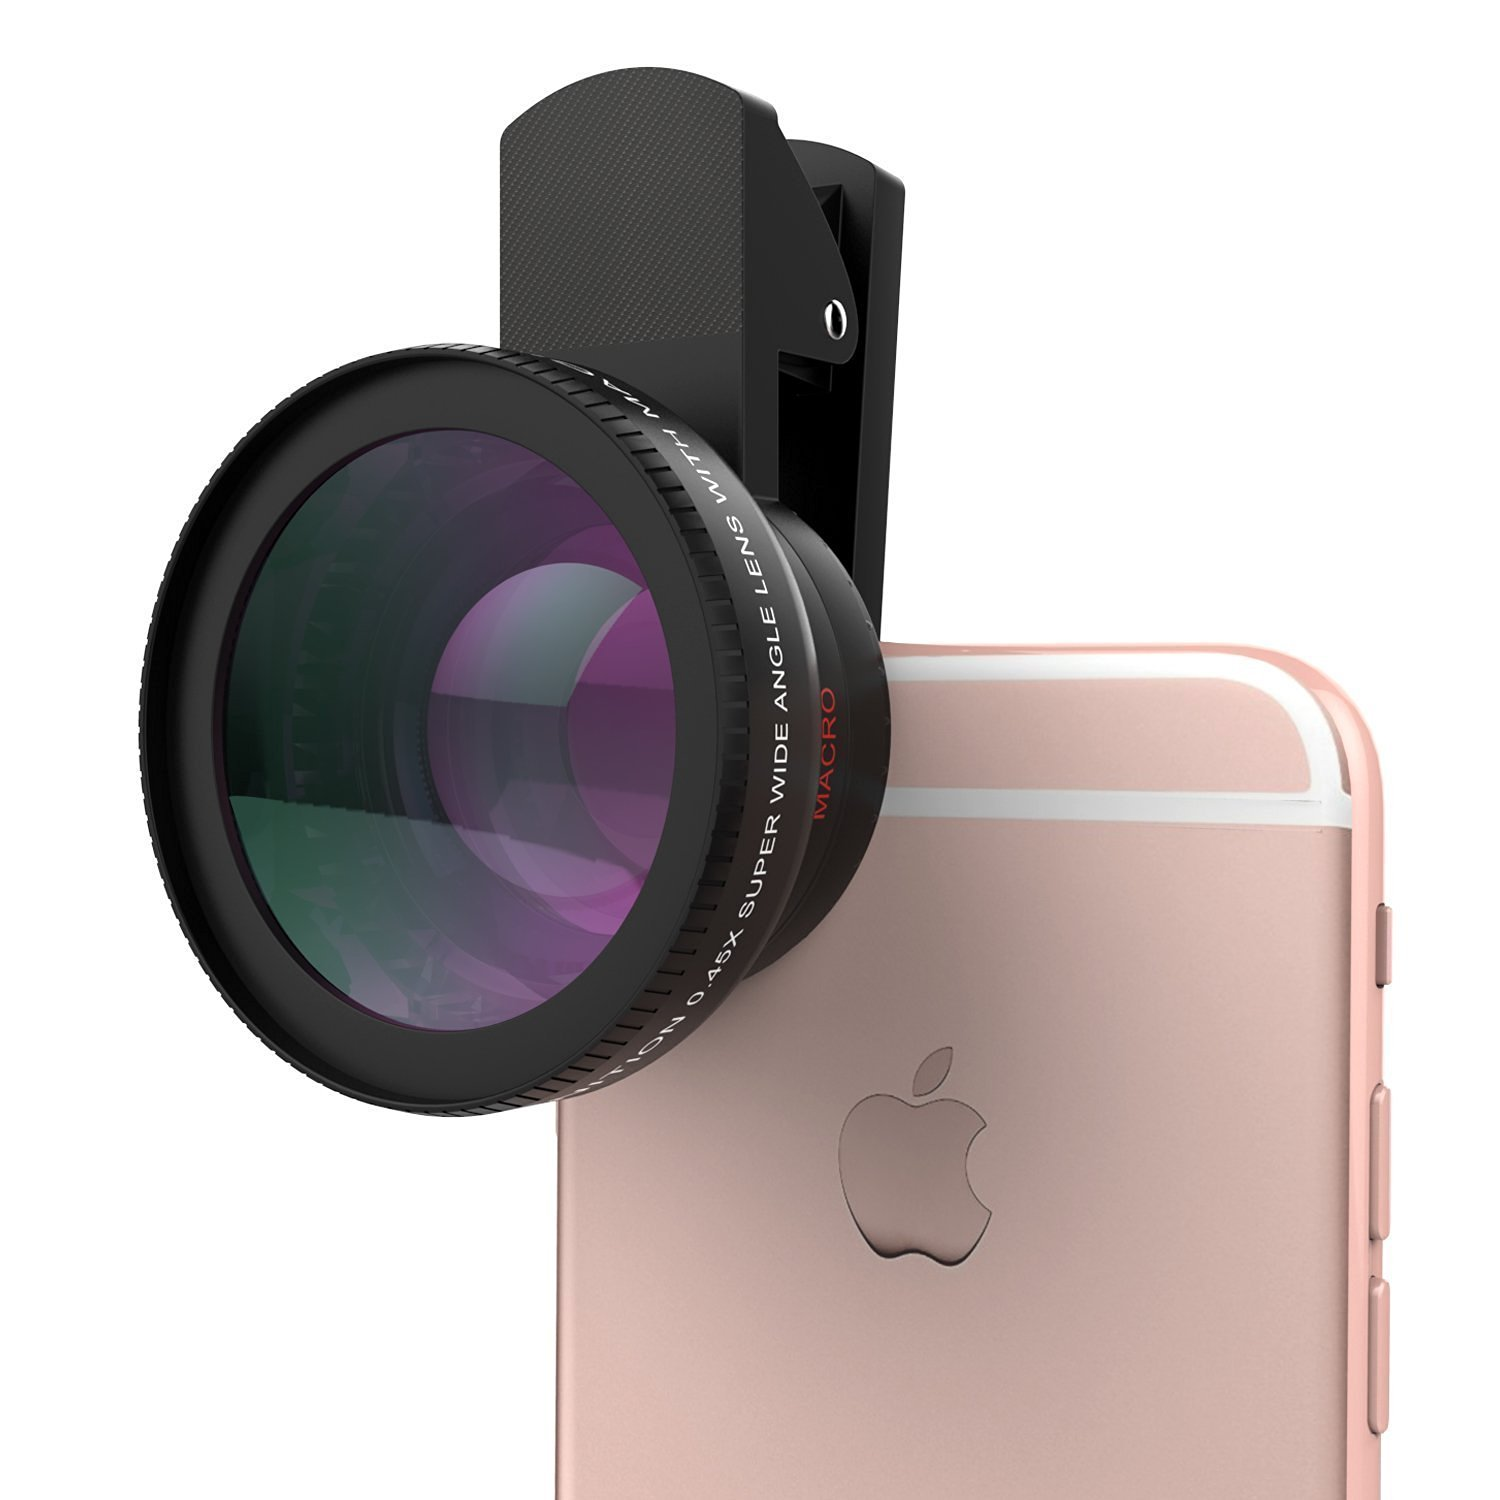 Universal Phone Camera Lens Kit,Spider-BX(TM)Clip-On 0.45X Super Wide Angle Lens and 15X Super Macro Lens,For iPhone SE/ 6s / 6s Plus /5s, Samsung Galaxy S7/S7 Edge/S6, HTC and Other Smartphone,BLACK